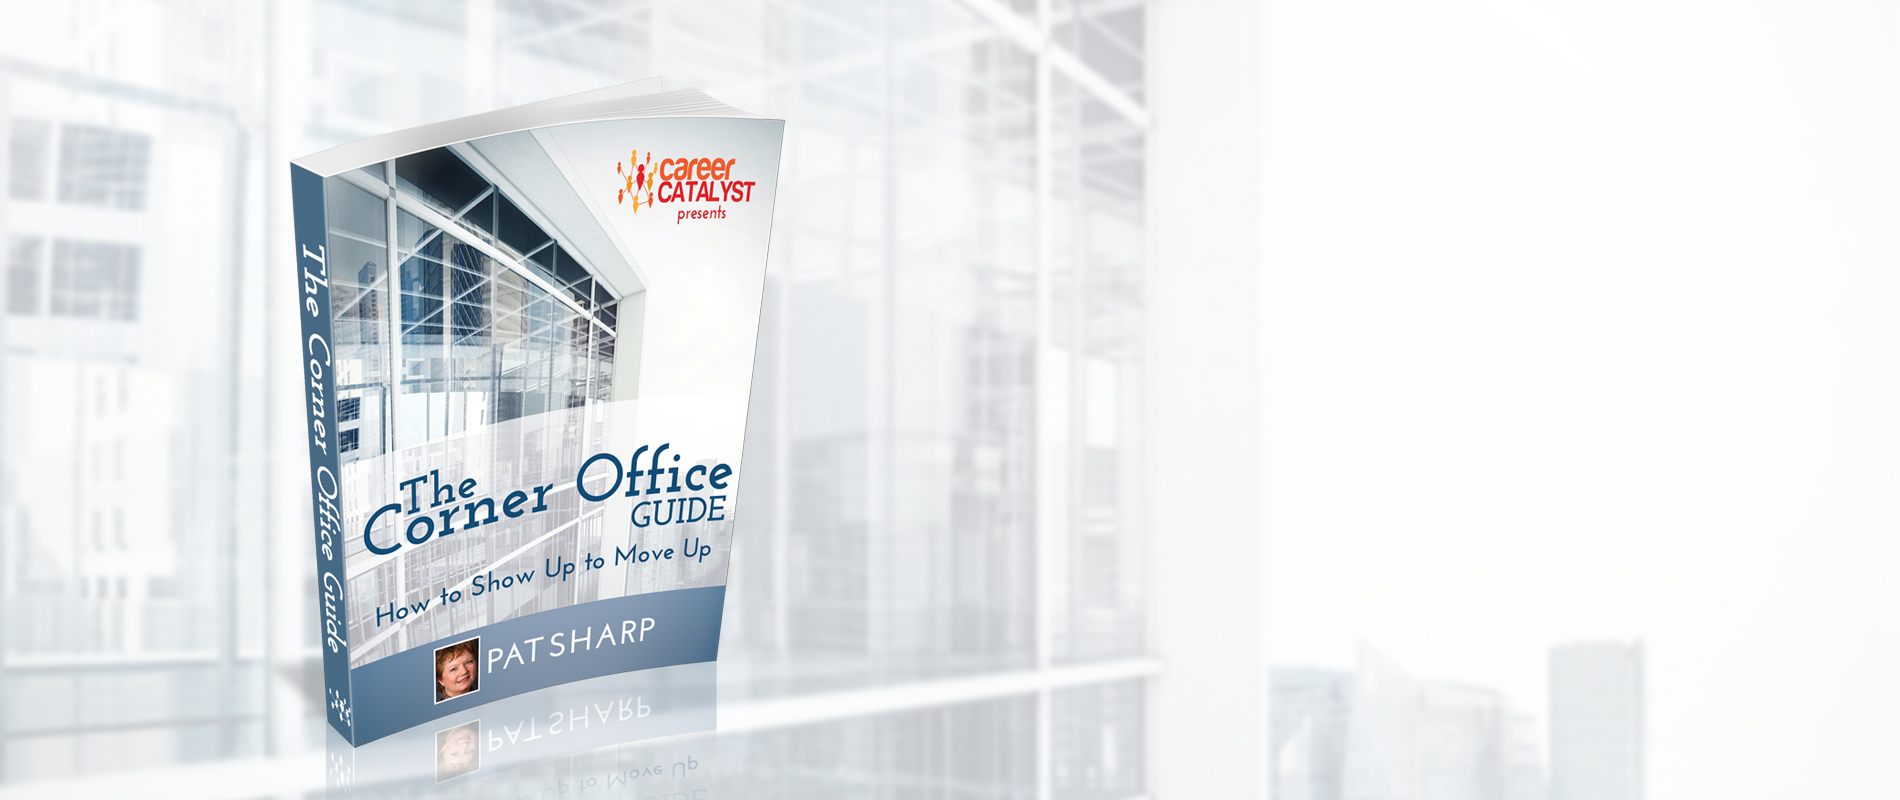 The Corner Office Guide